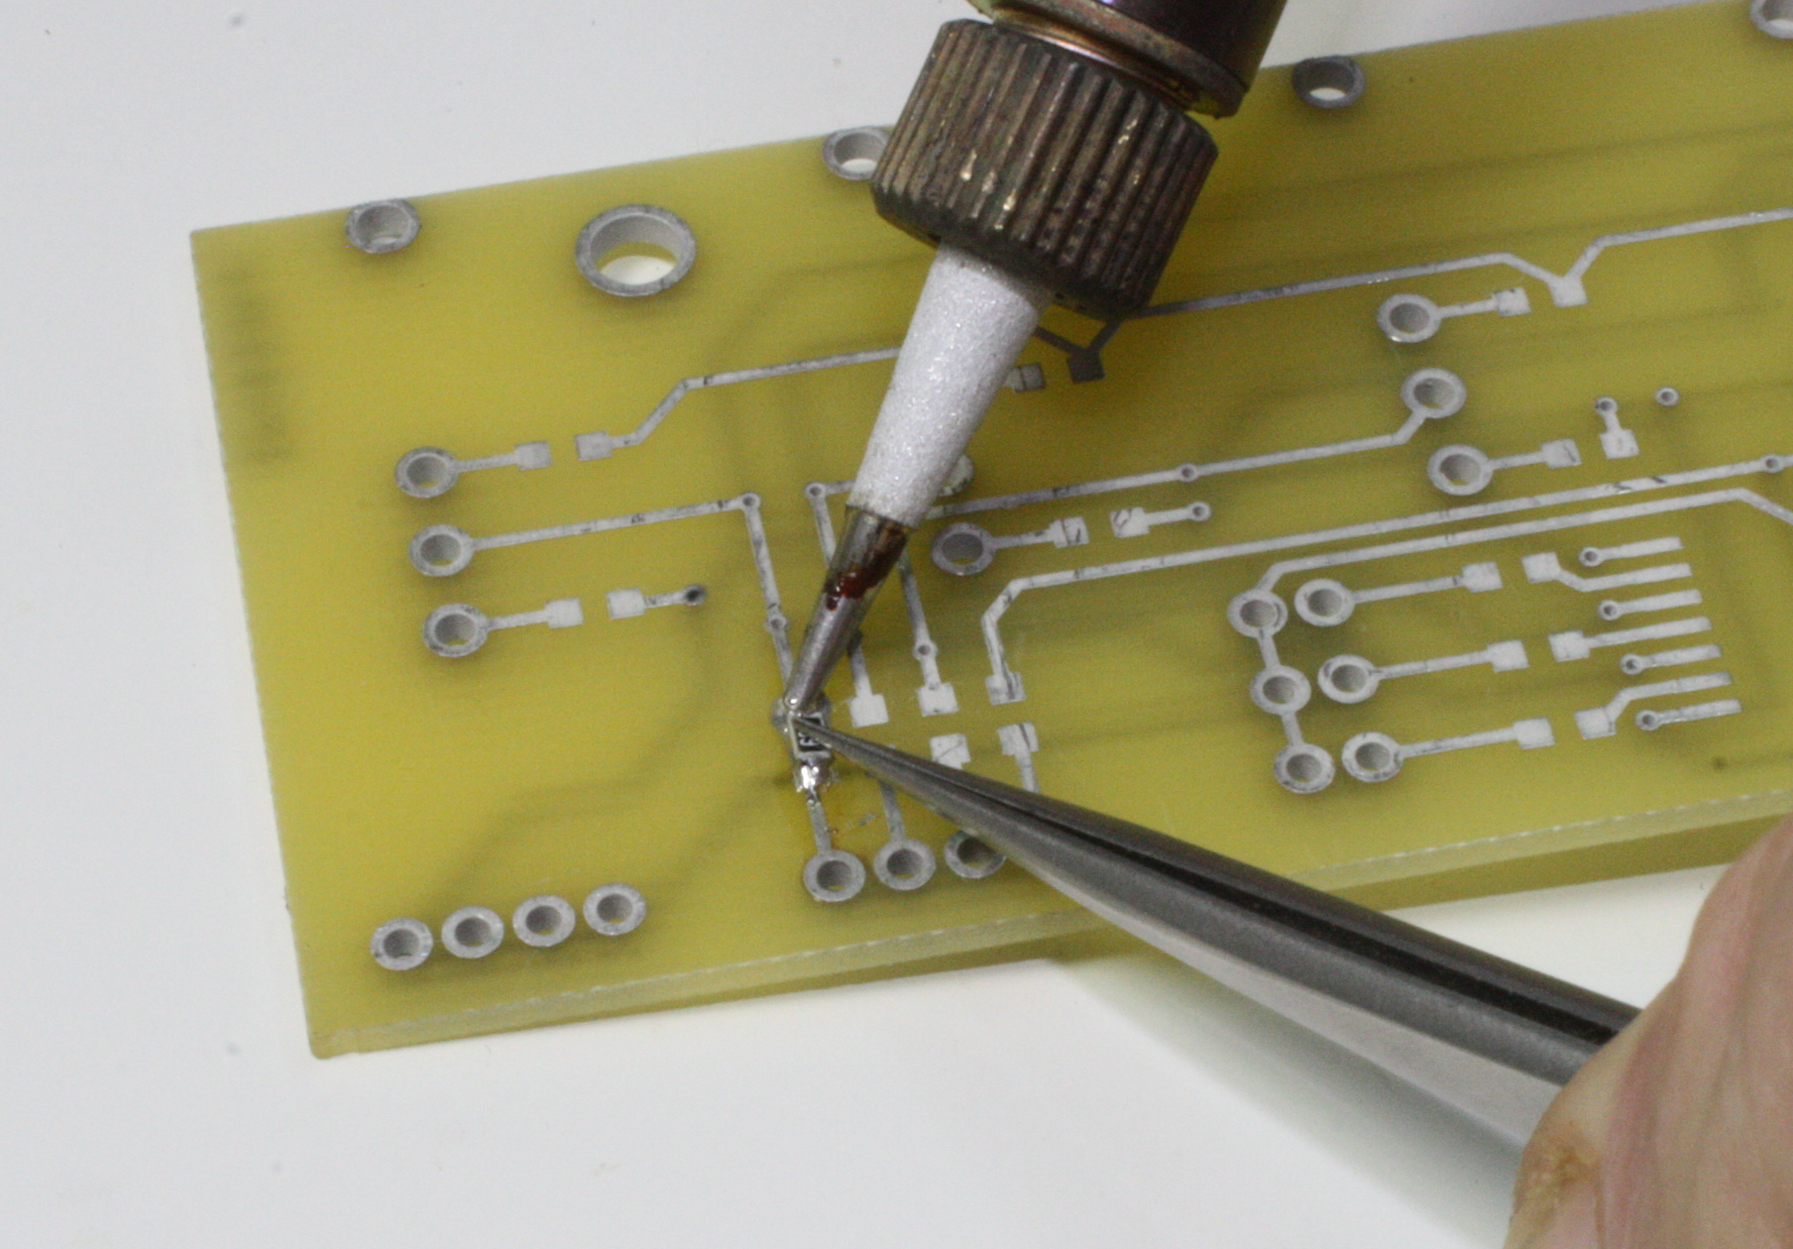 4 Tool Techniques Practical Electronics Components And Oz Aerosol Can Circuit Printed Boards Figure 41 Soldering One End Of An Smt Resistor